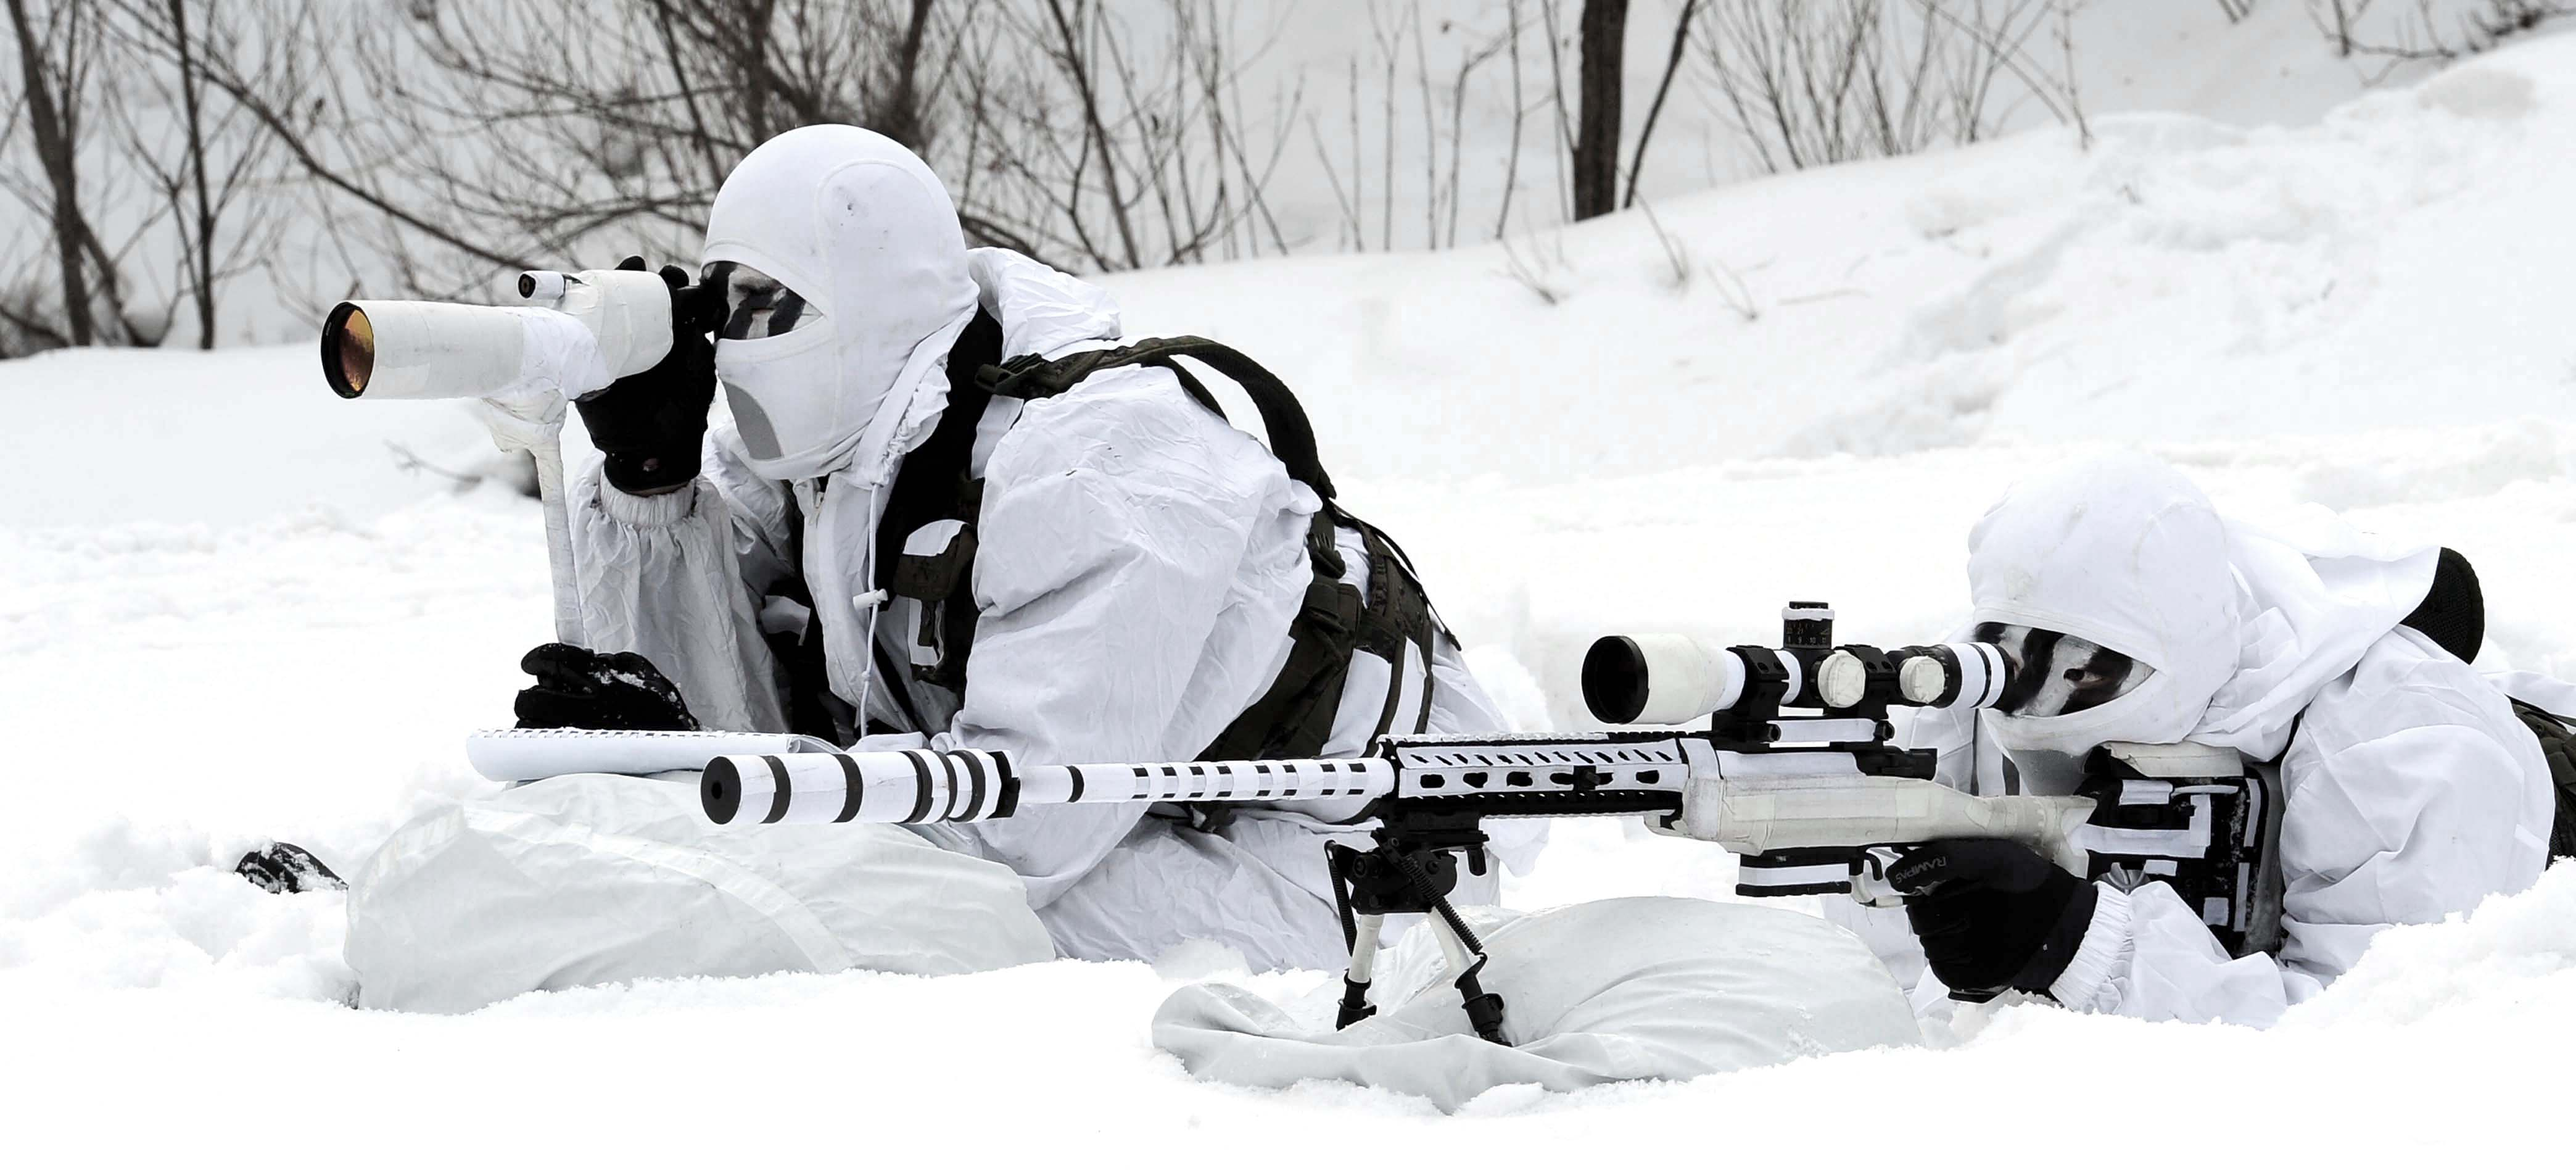 2014.1.8_육군_특전사_설한지_극복_훈련_The_Cold_Weather_Traning_of_ROK_Army_Special_Warfare_Force_(11845954853).jpg